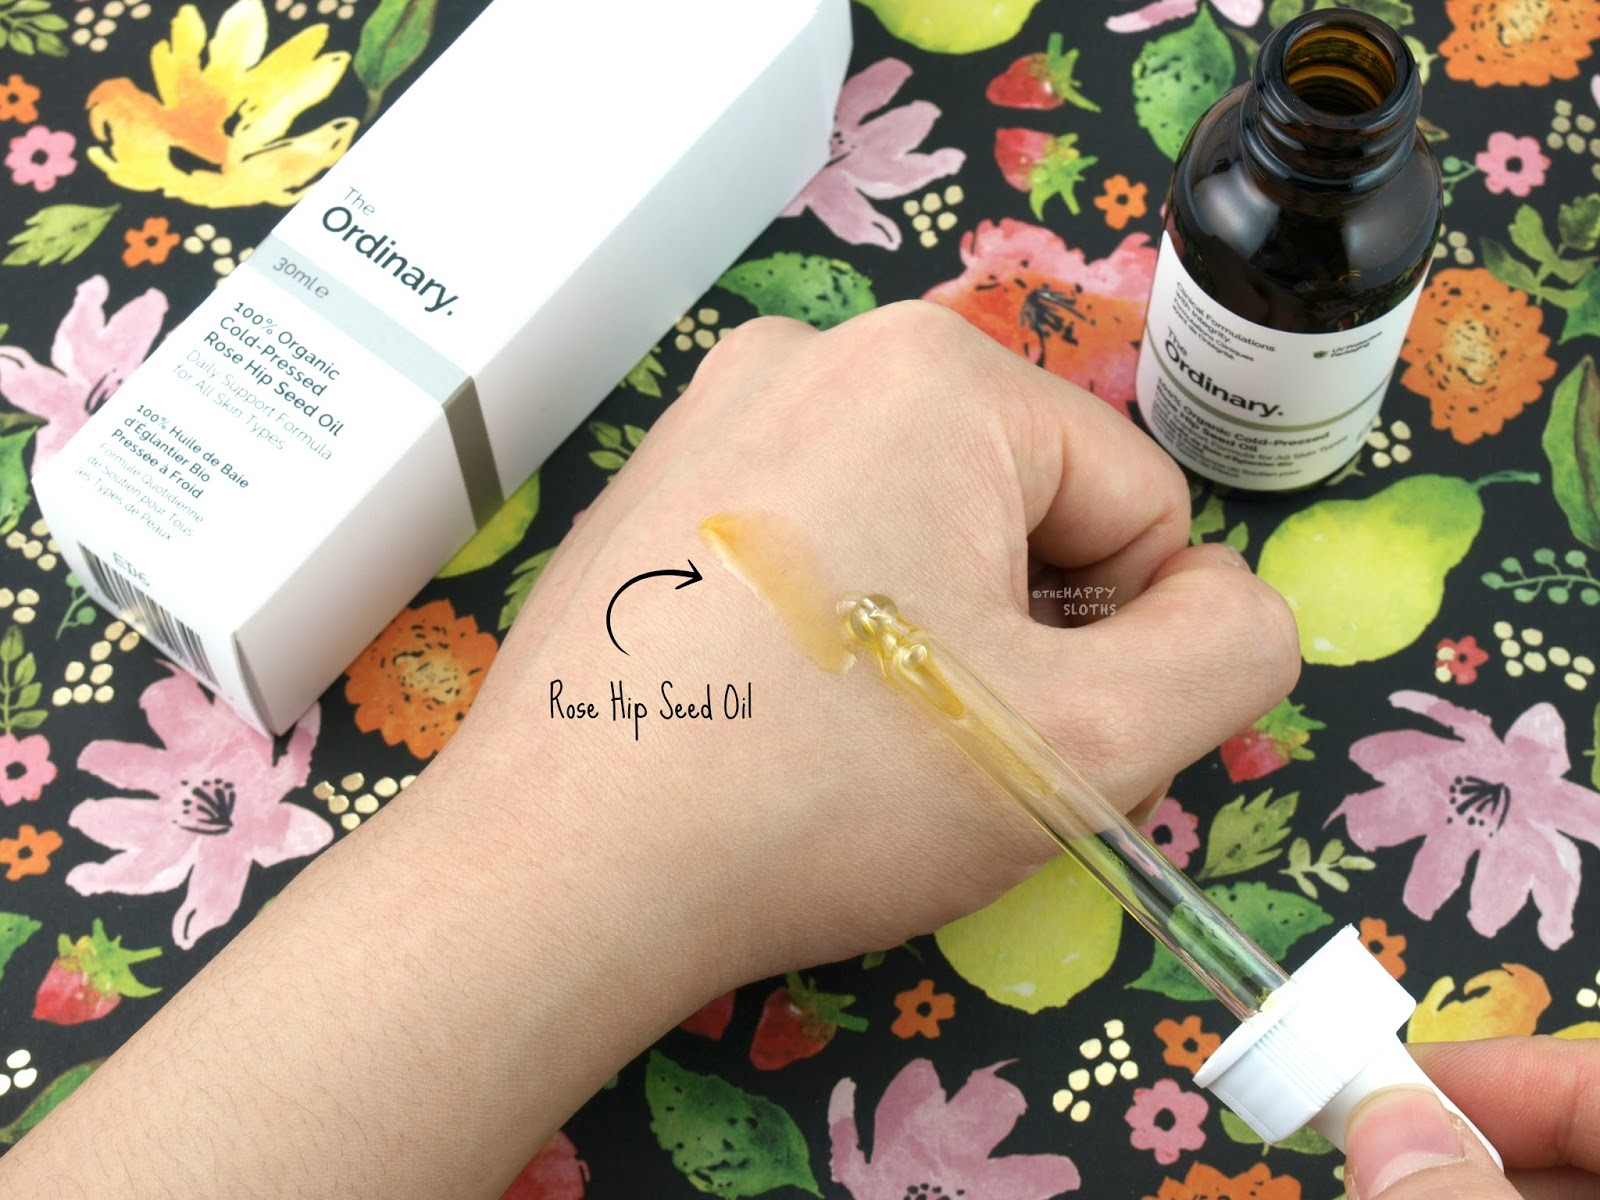 DECIEM The Ordinary Rose Hip Seed Oil Review